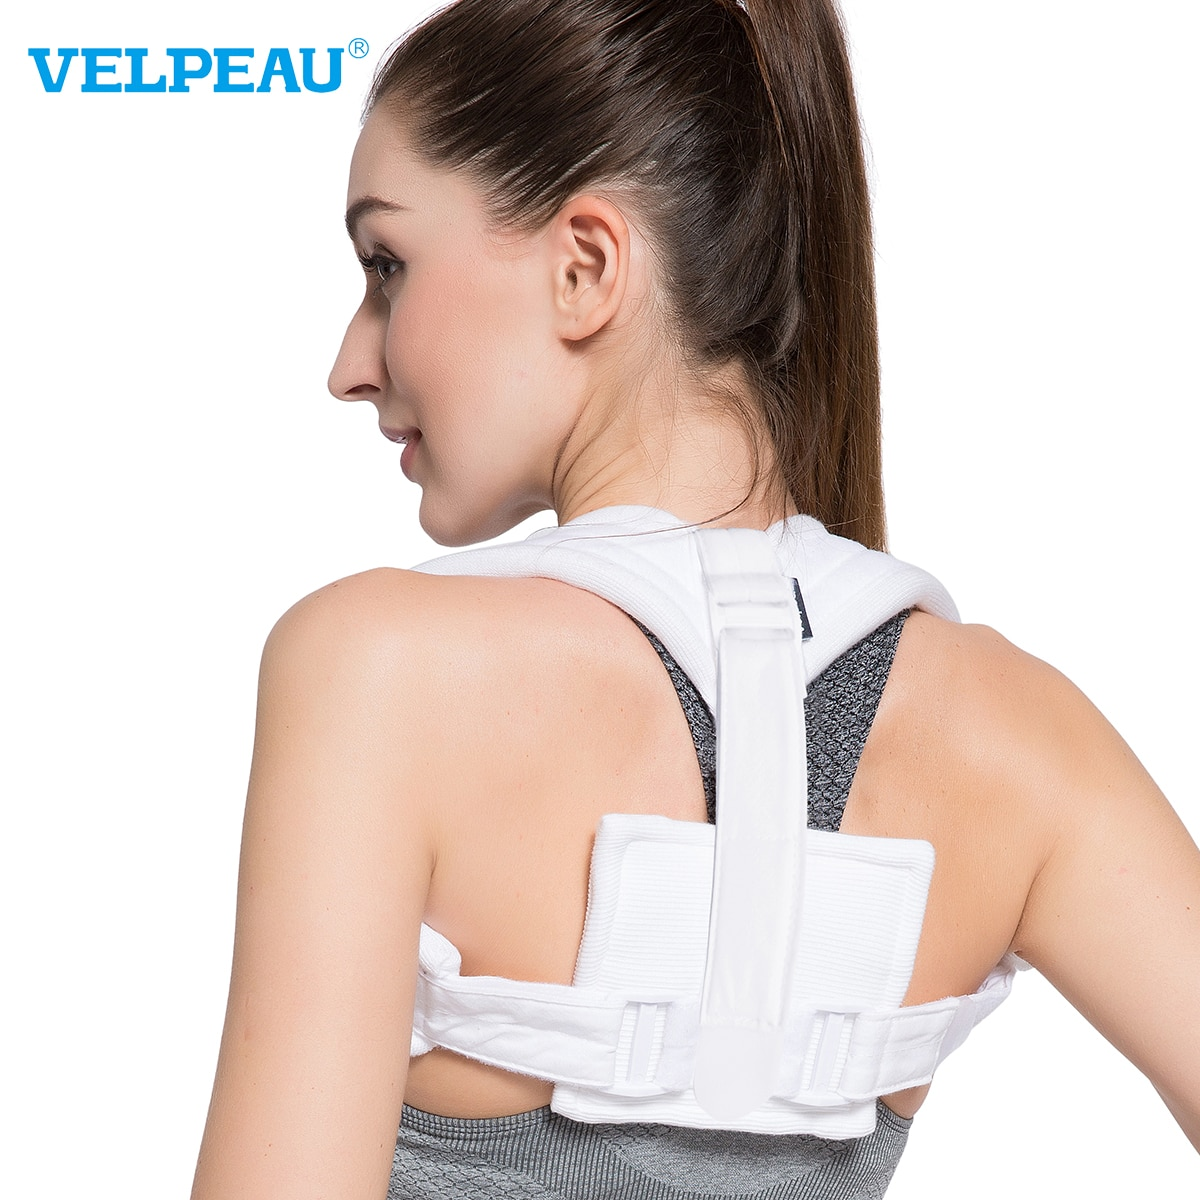 VELPEAU Posture Corrector Prevent Hunchback Change Your Image Corrective Braces with Wide and Soft S